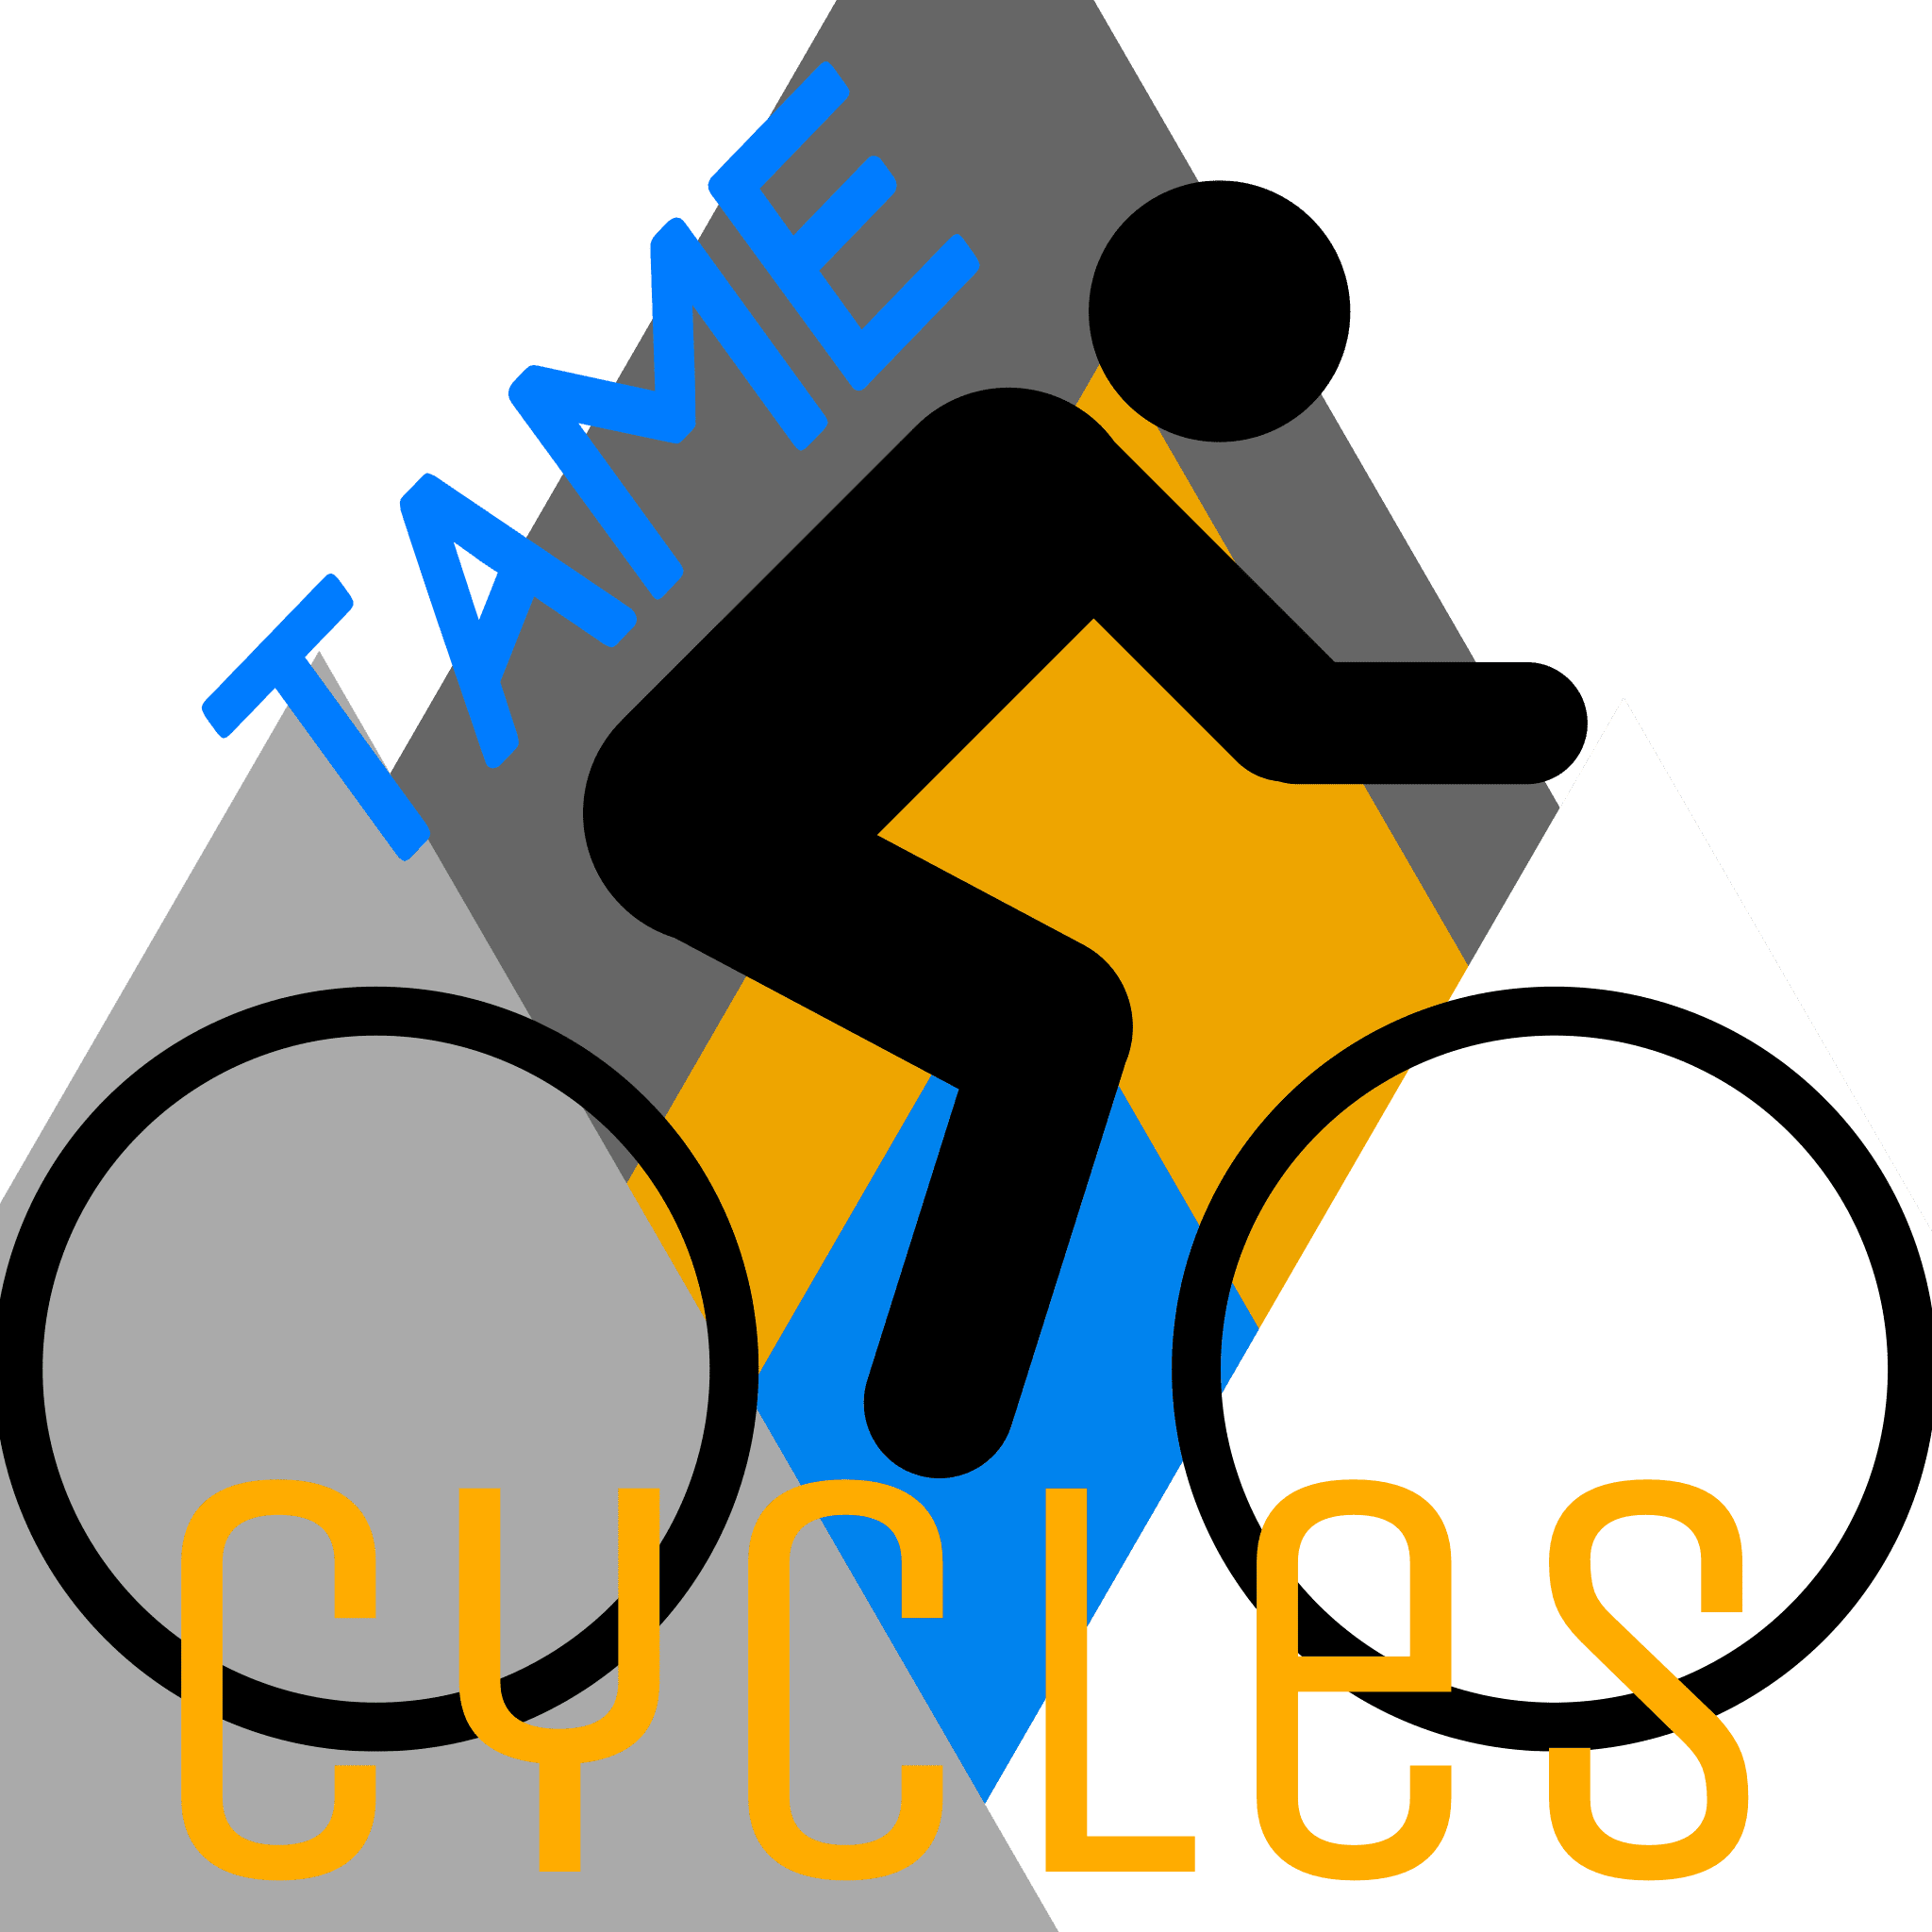 Tame Cycles